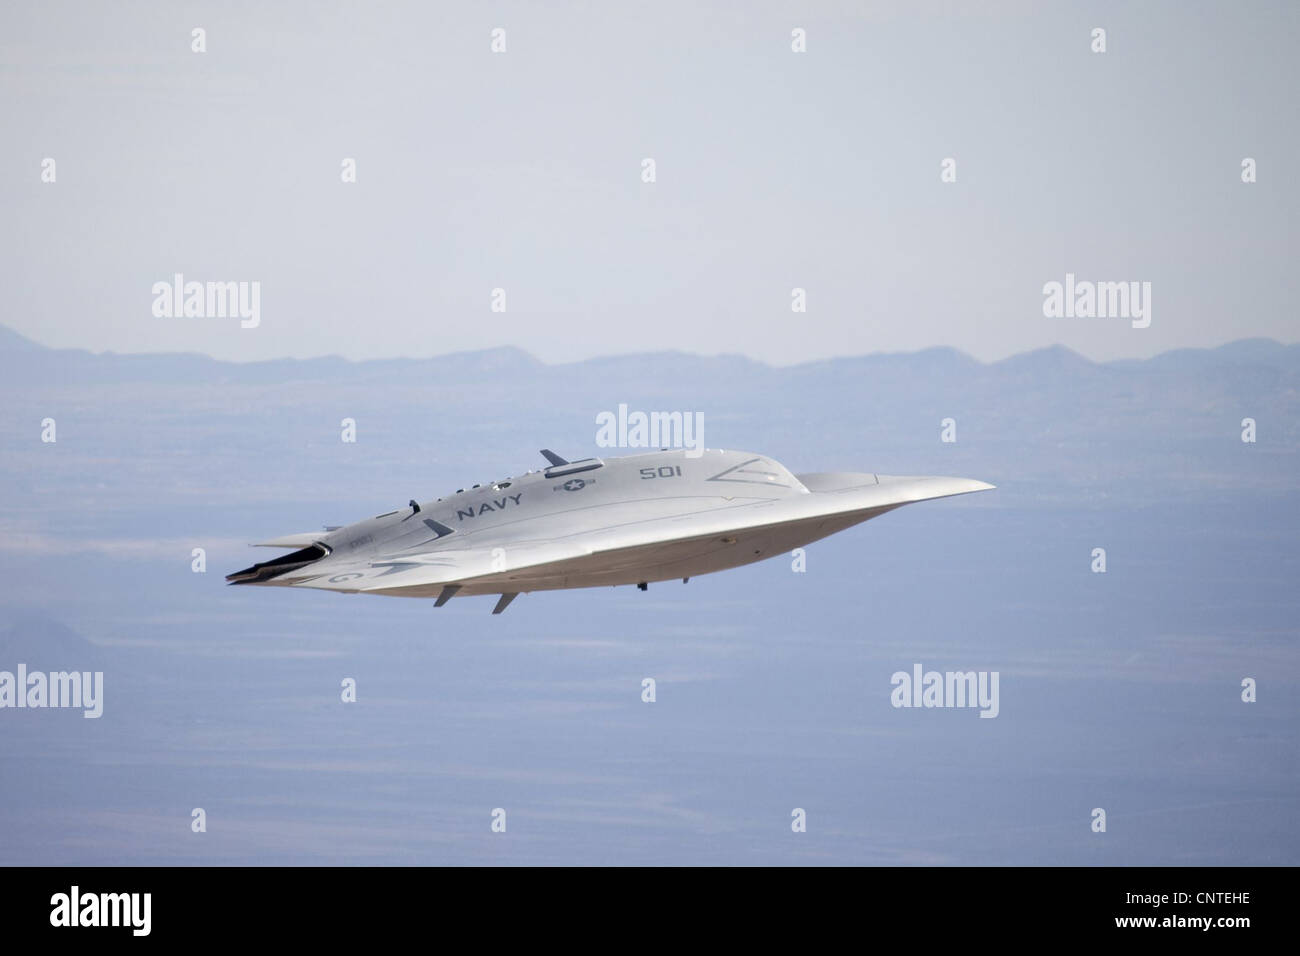 X-47B next generation unmanned aerial drone inflight September 30, 2011 at Edwards Air Force Base, CA. - Stock Image